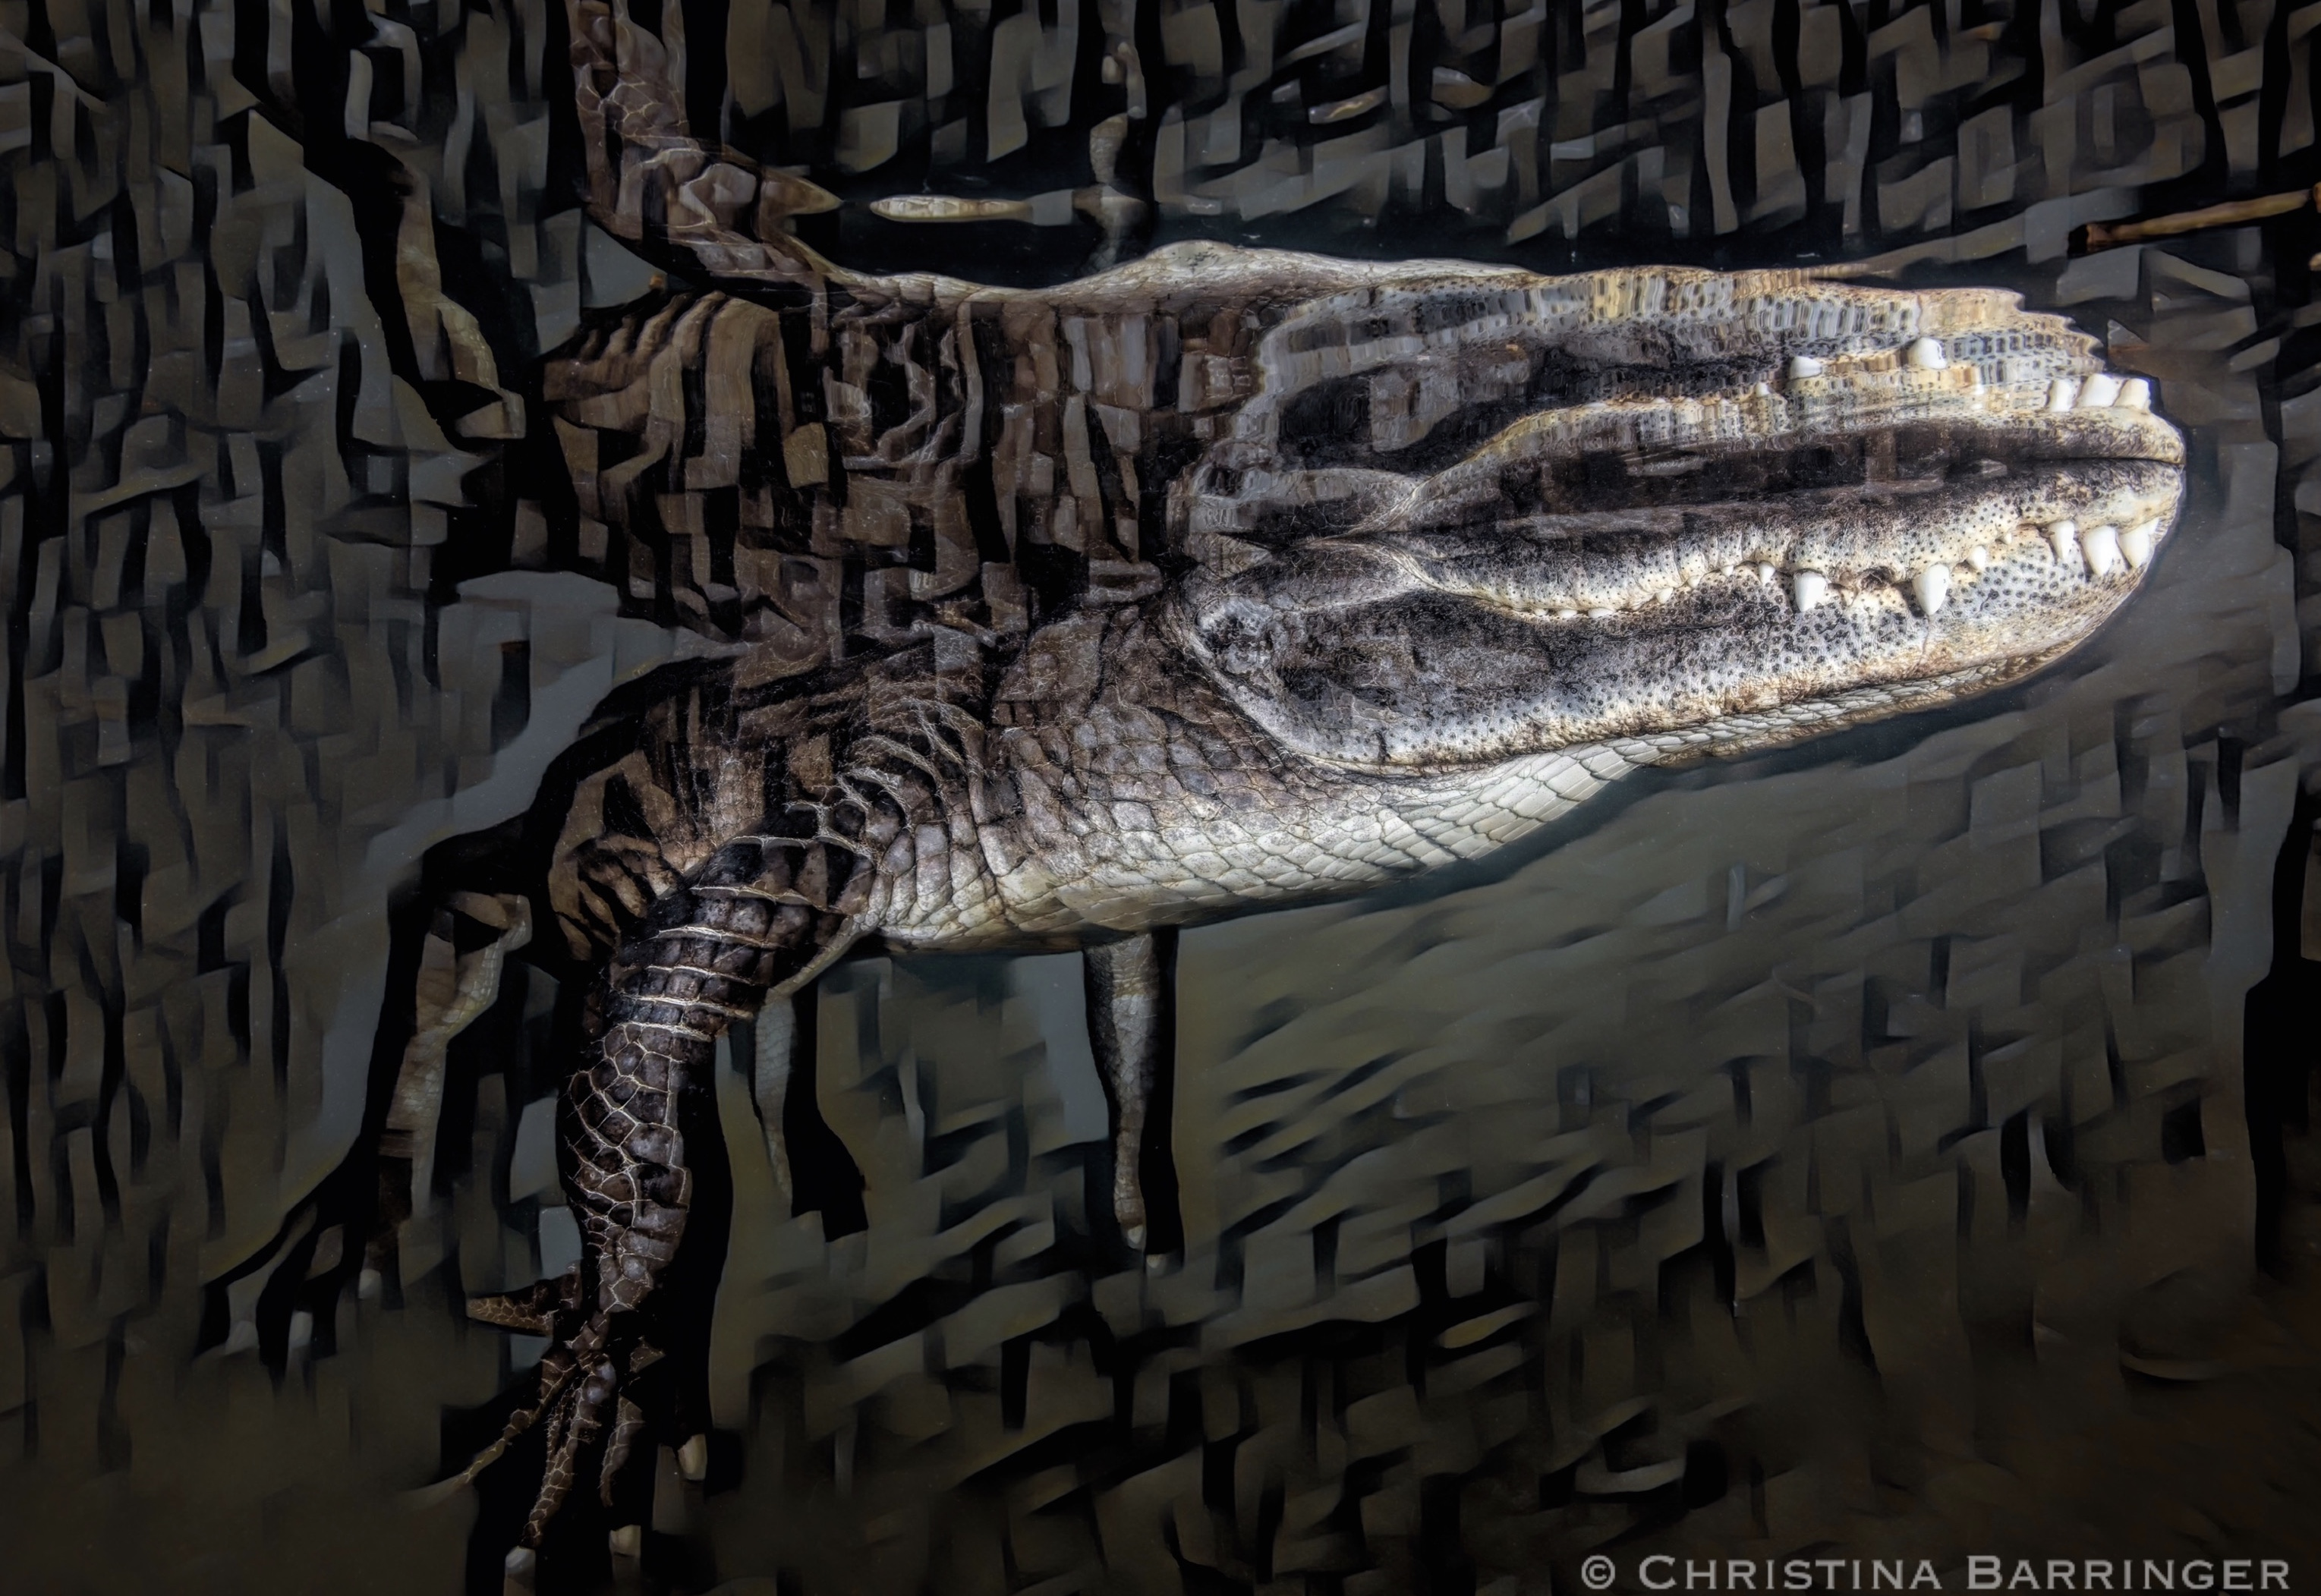 Gator, FL: DIGITAL ART